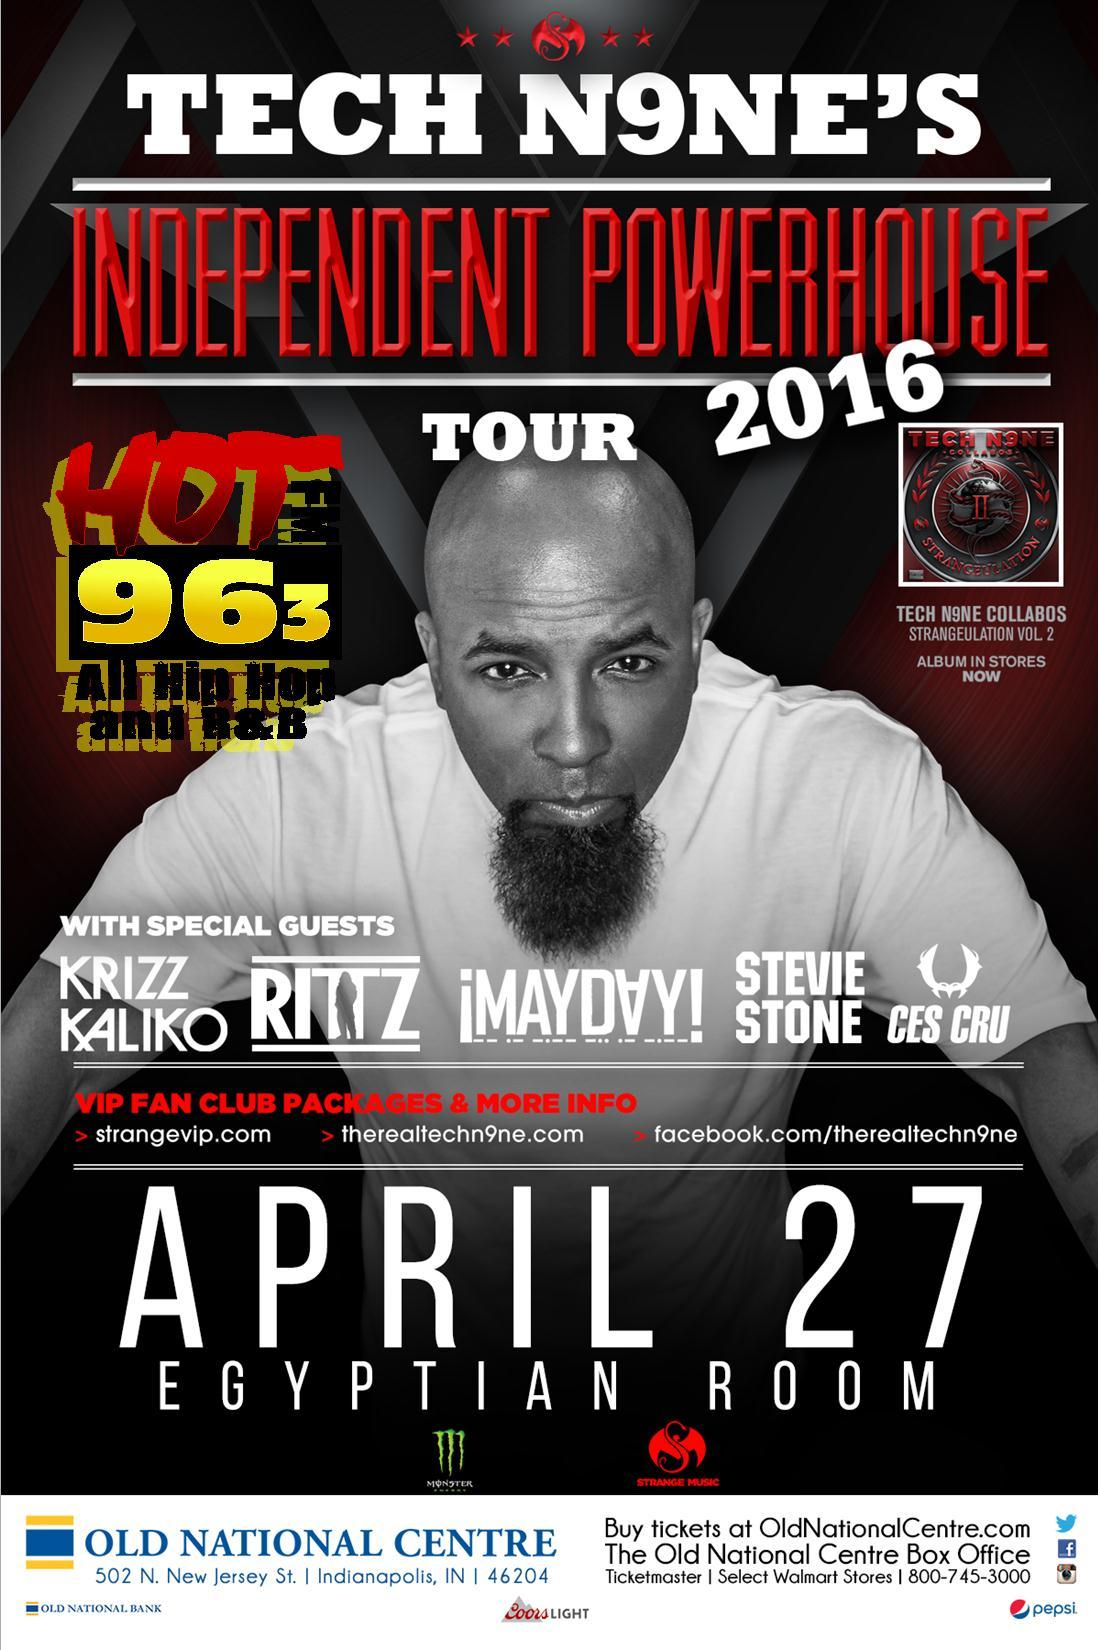 The Independent Powerhouse Tour 2016